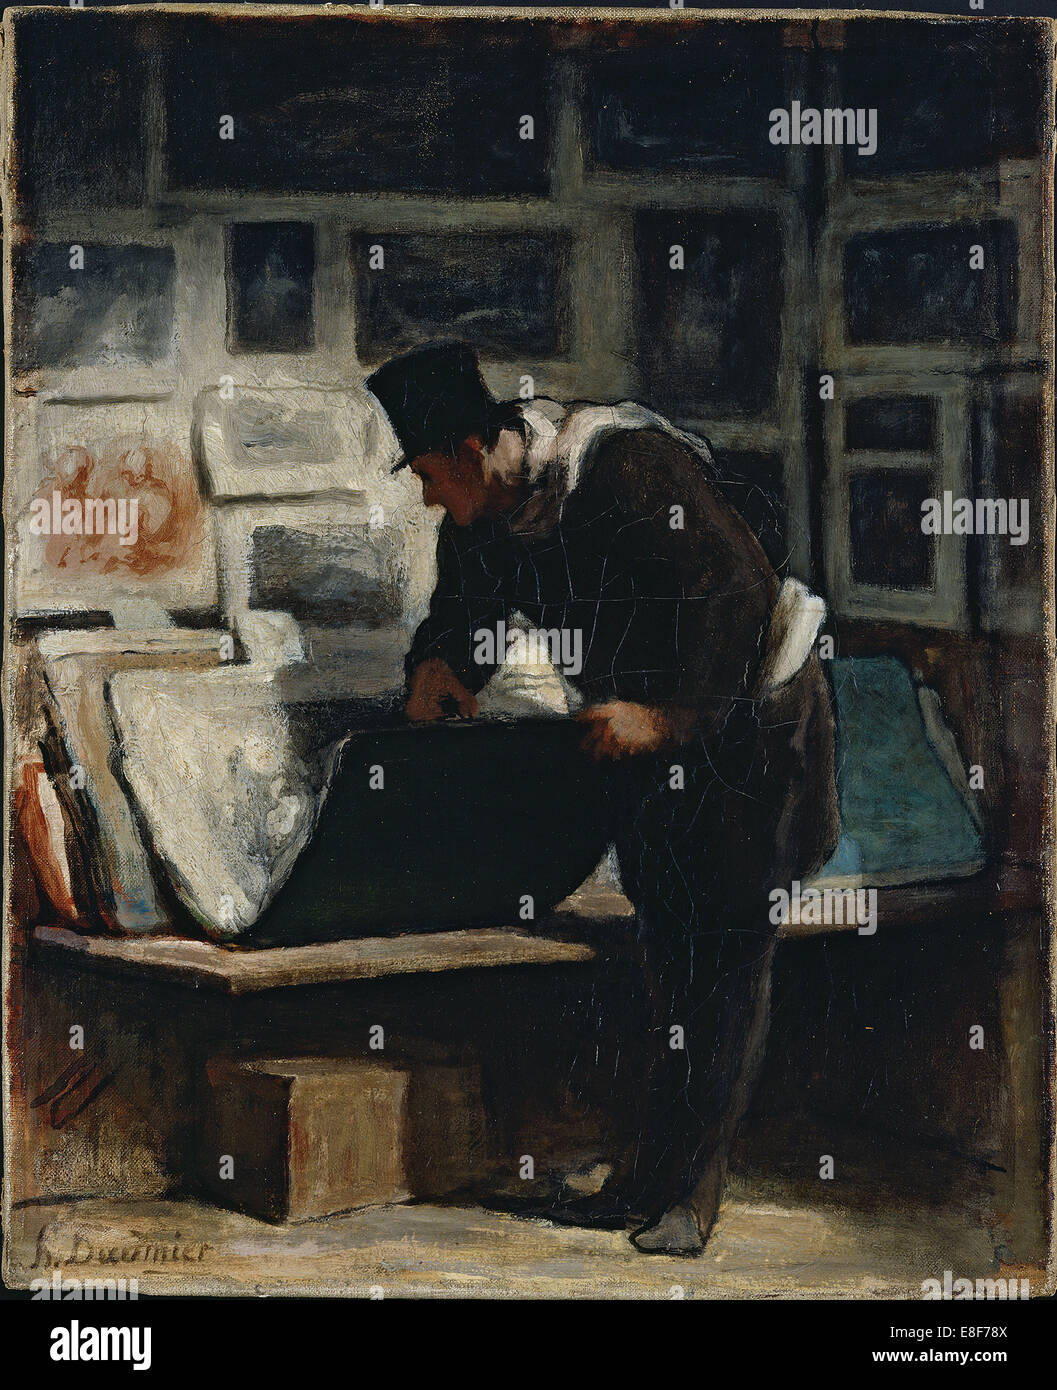 The Prints Collector. Artist: Daumier, Honoré (1808-1879) - Stock Image